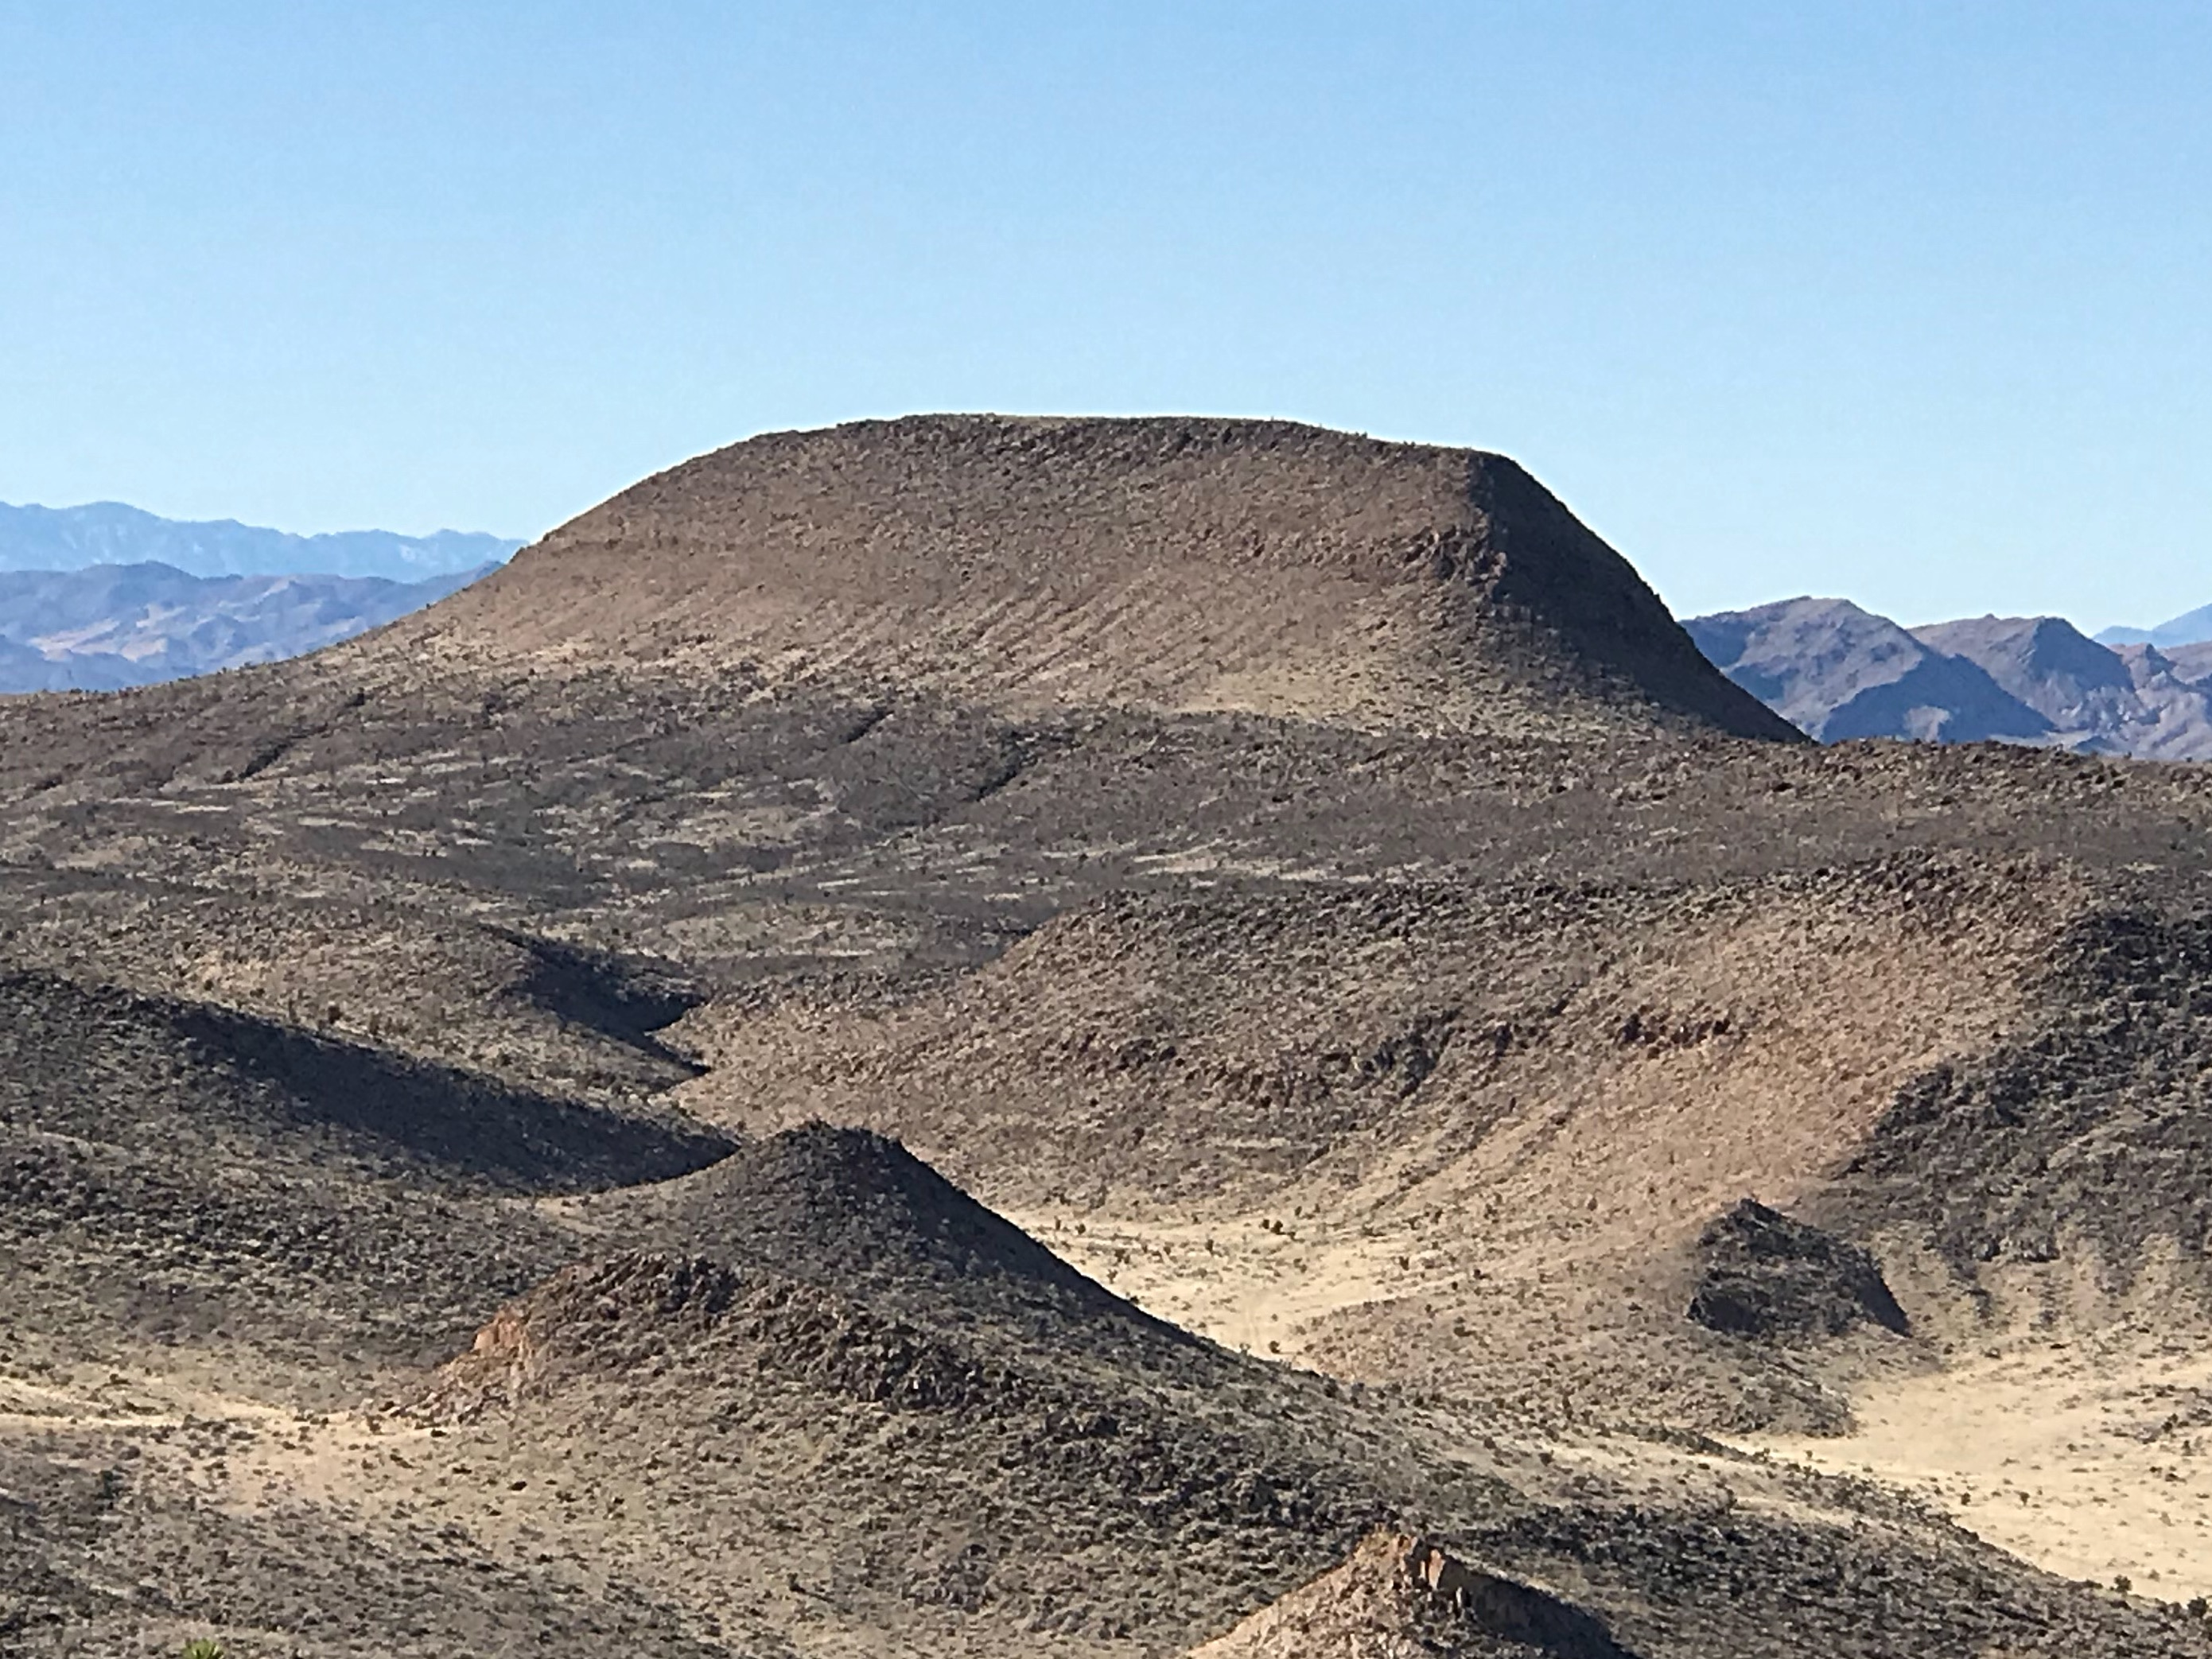 Alamo BM viewed from the northwest. This peak towers over Alamo, Nevada.